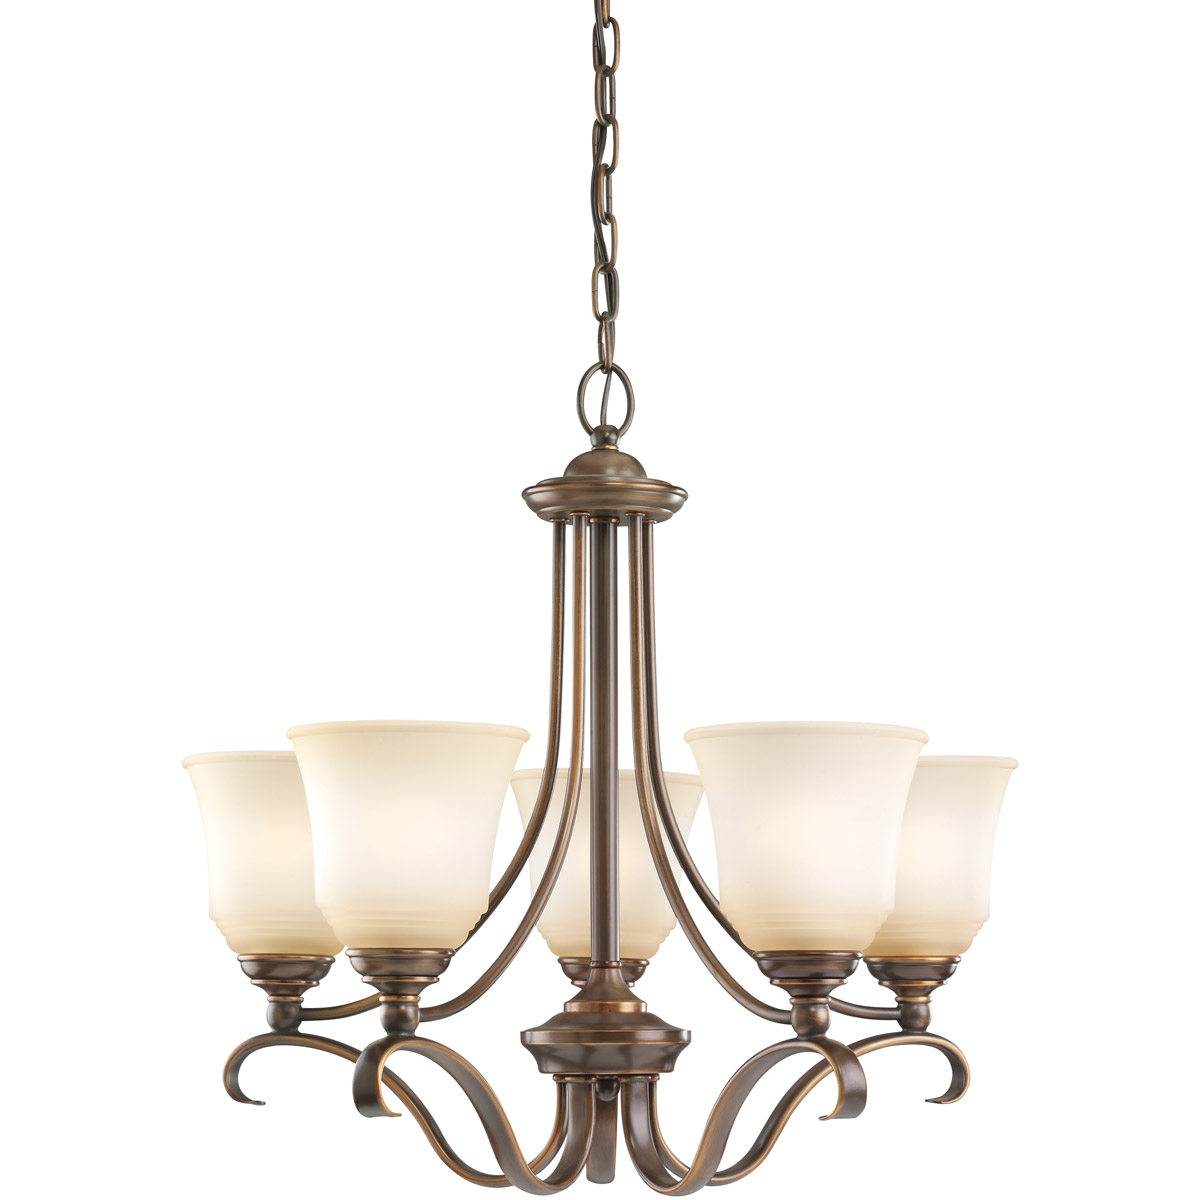 Sea Gull 31380-829 Parkview 5 Light 24 inch Russet Bronze Chandelier Ceiling Light in Ginger Glass photo